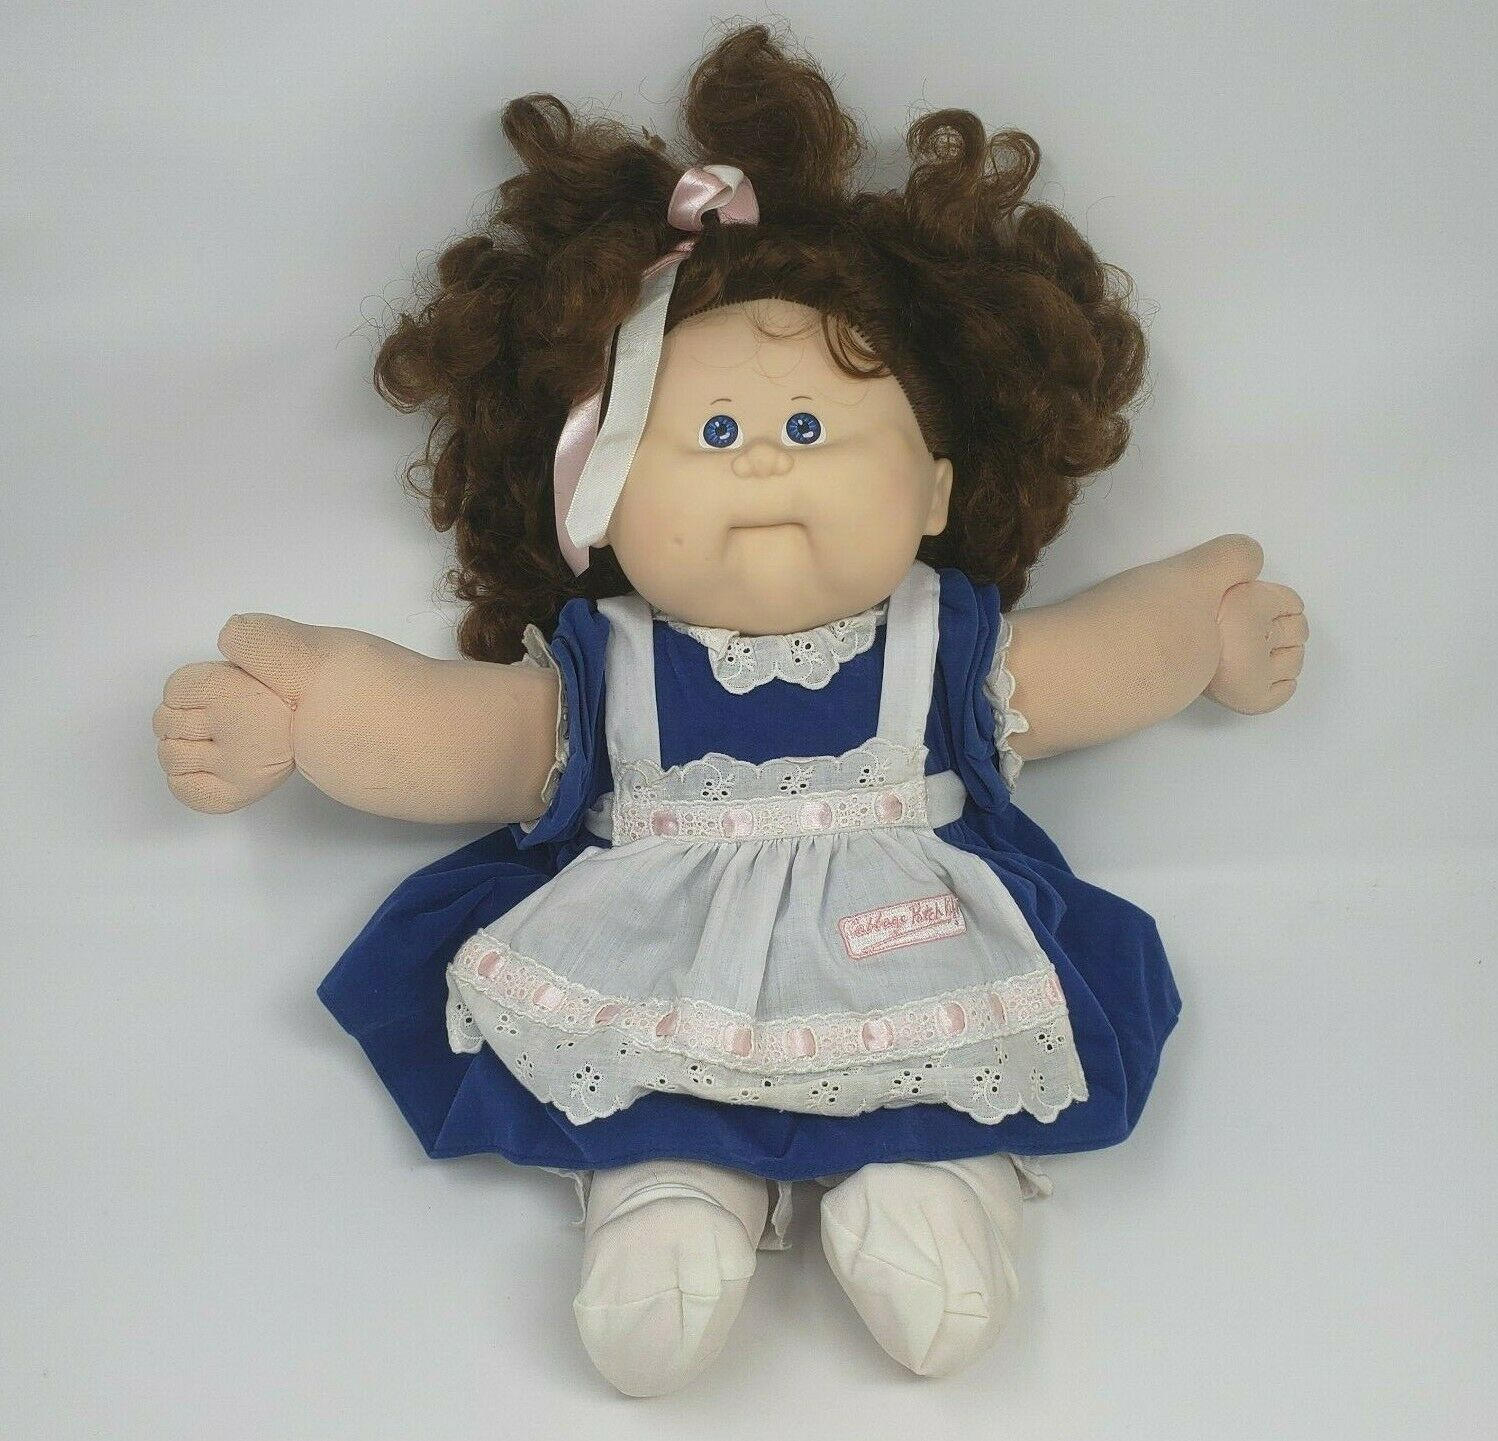 Primary image for VINTAGE 1988 CABBAGE PATCH KIDS CPK GIRL DOLL PLUSH NON TALKING BROKEN REPAIR  A